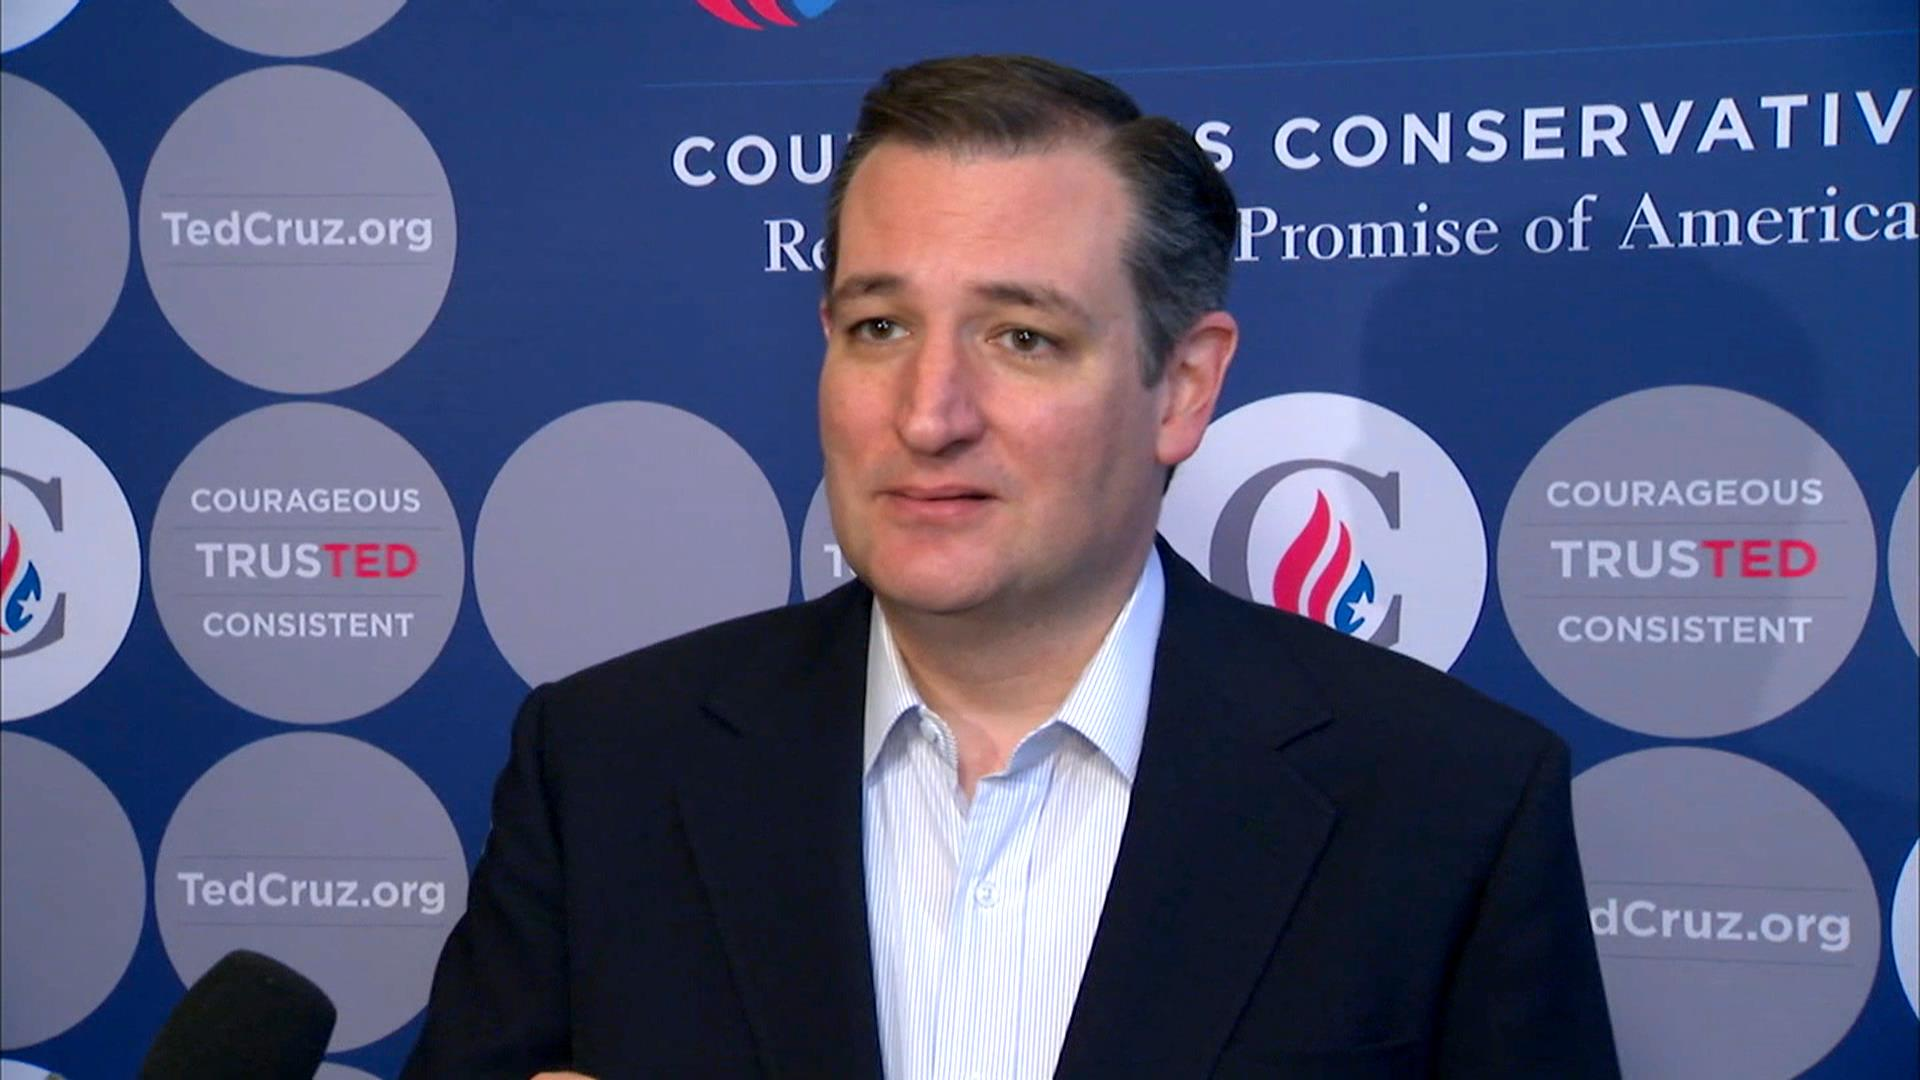 Cruz Stands By Promise to Support GOP Nominee